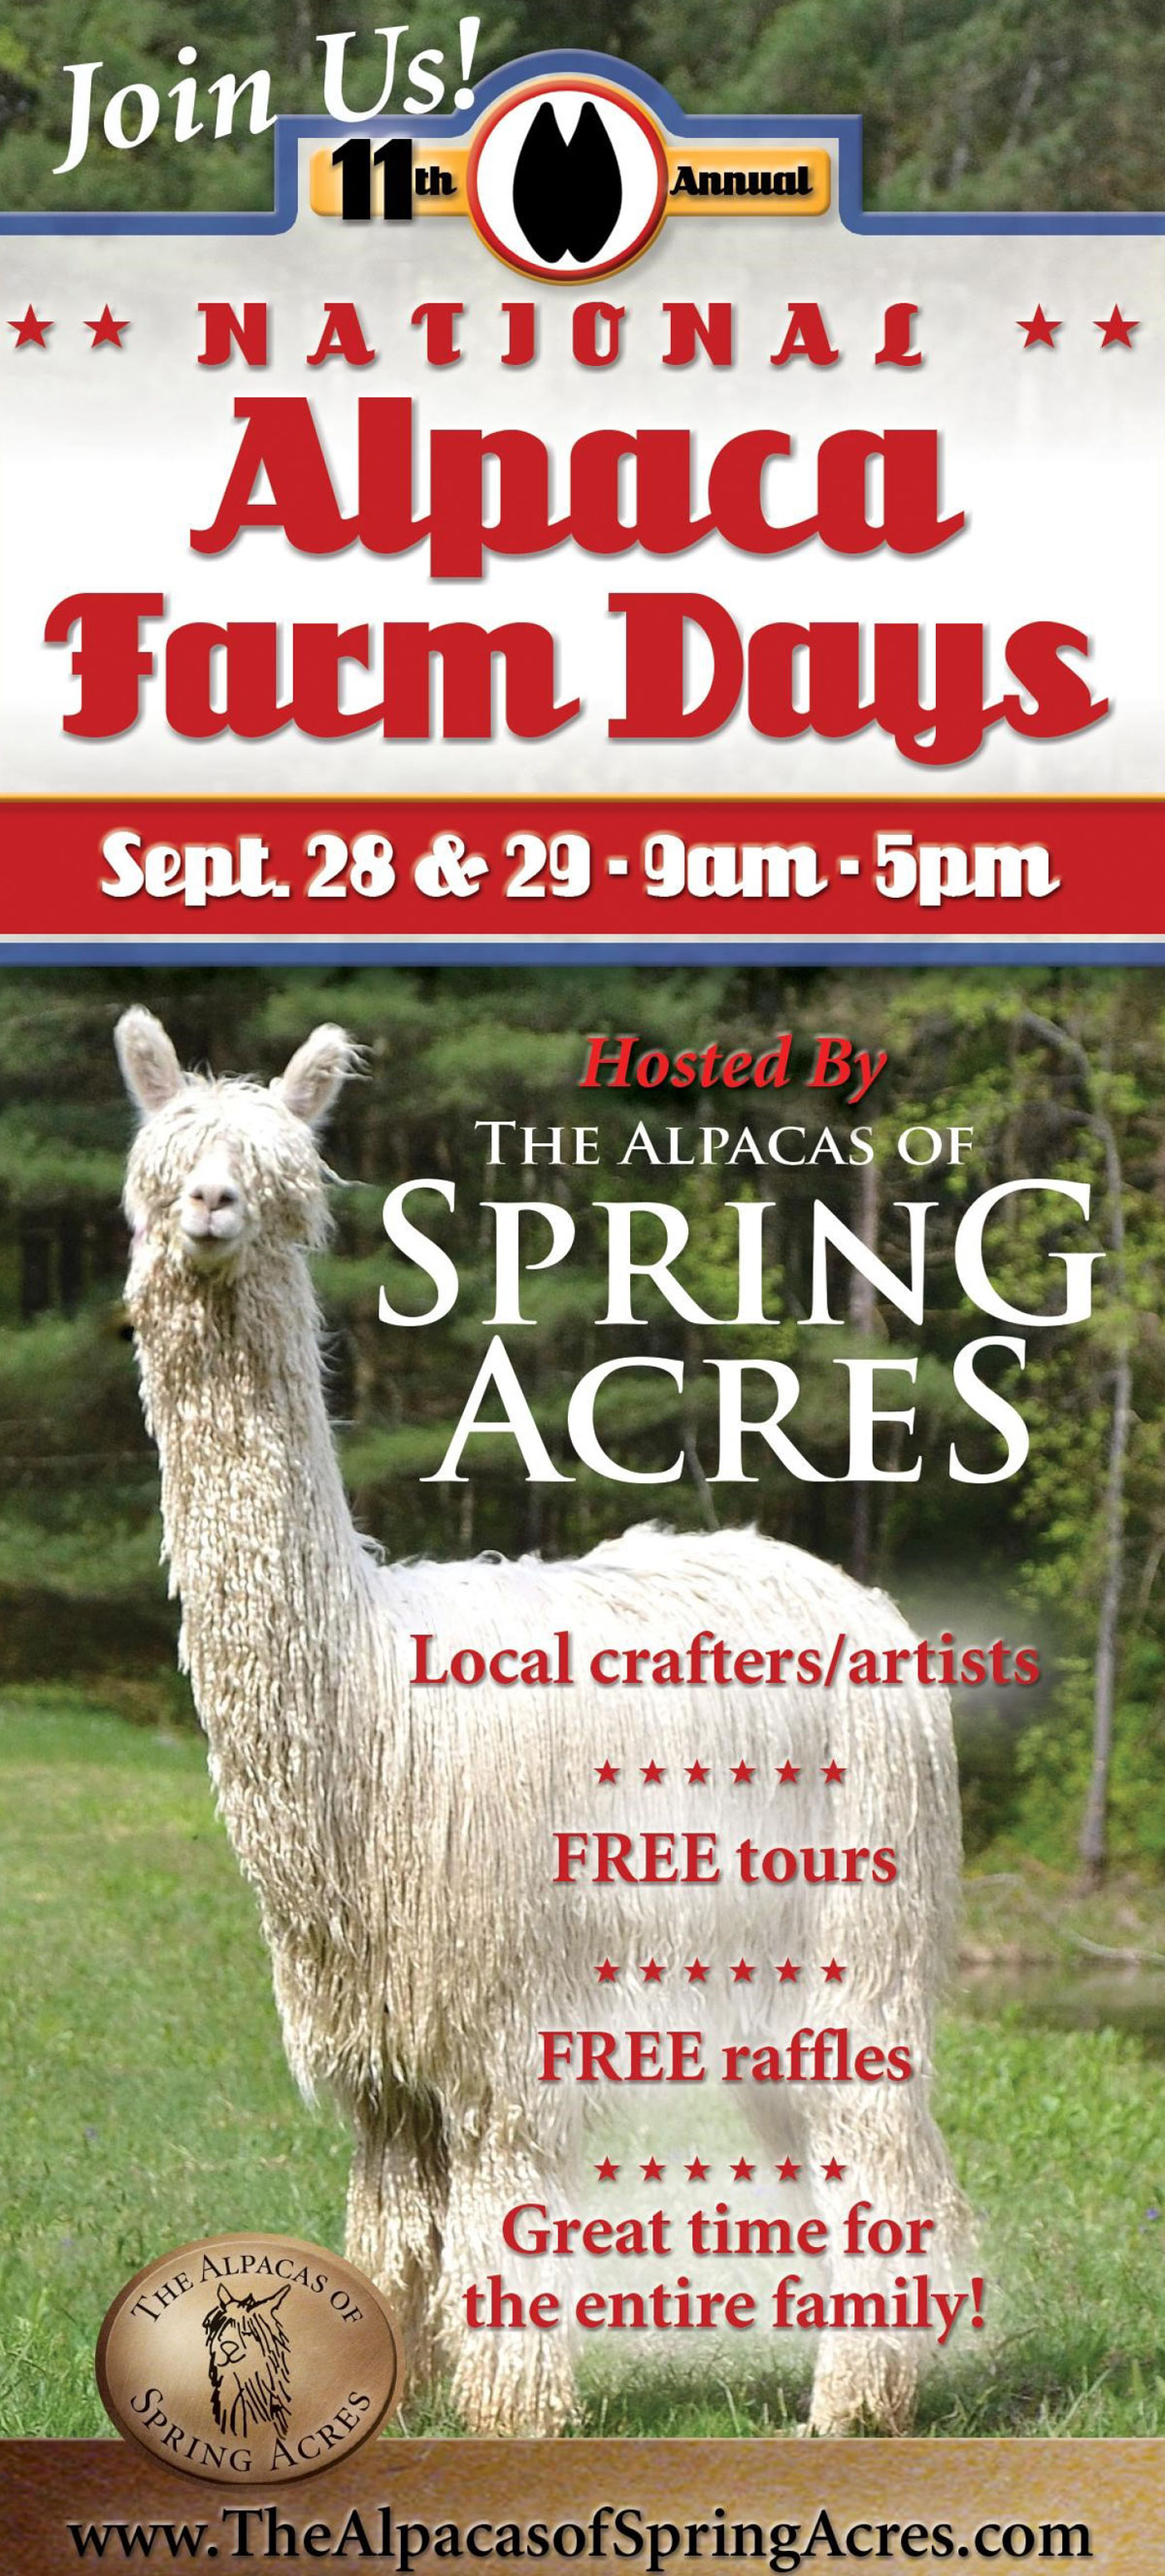 National-Alpaca-Farm-Days-Alpacas-Spring-Acres-September-24-25-Adamsville-Ohio